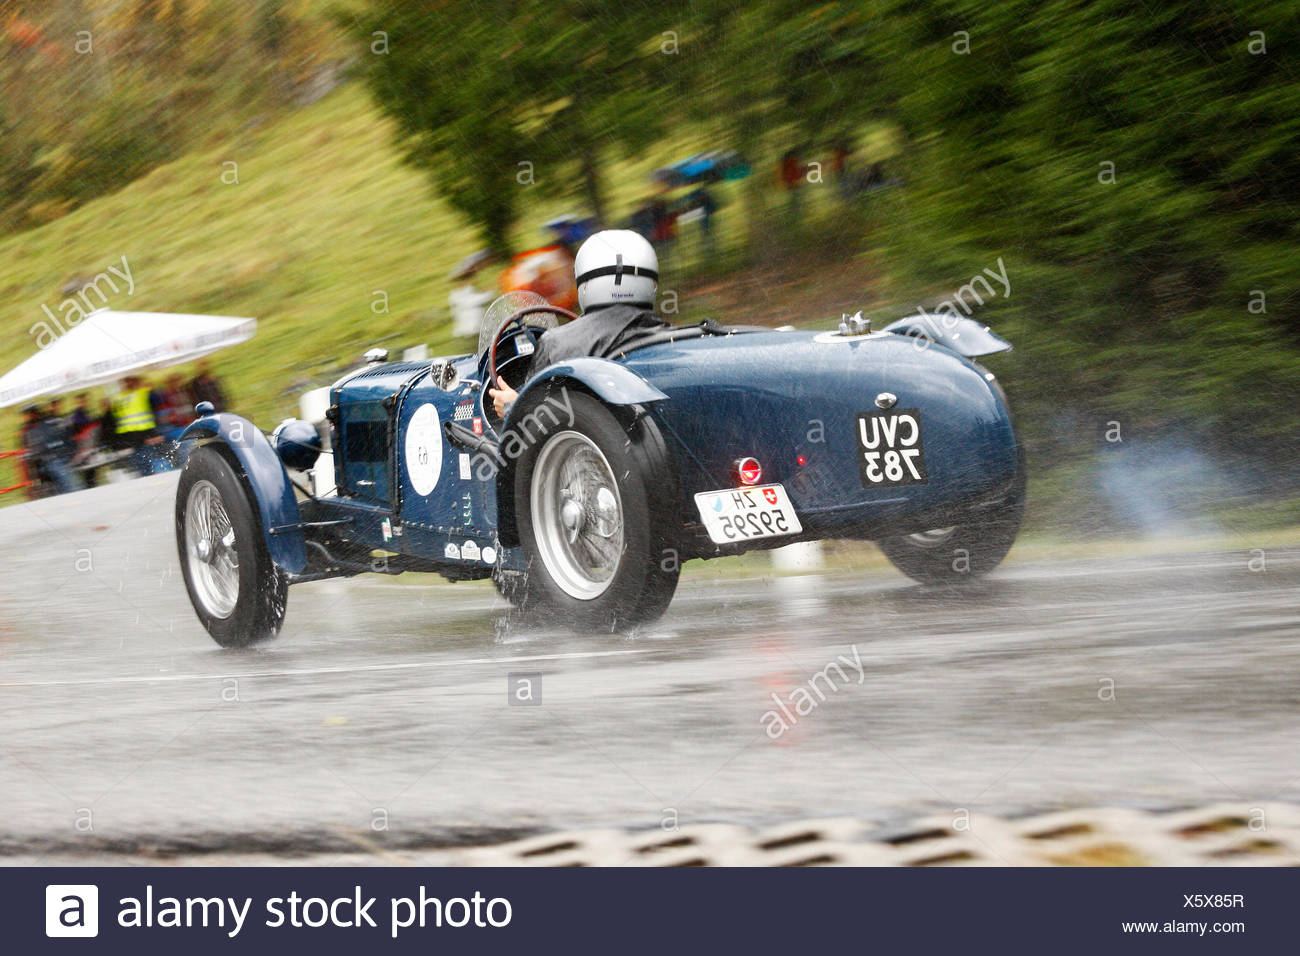 Classic car in the rain, Riley TT Sprite, built in 1936, Jochpass Memorial 2009 rally, Bad Hindelang, Bavaria - Stock Image